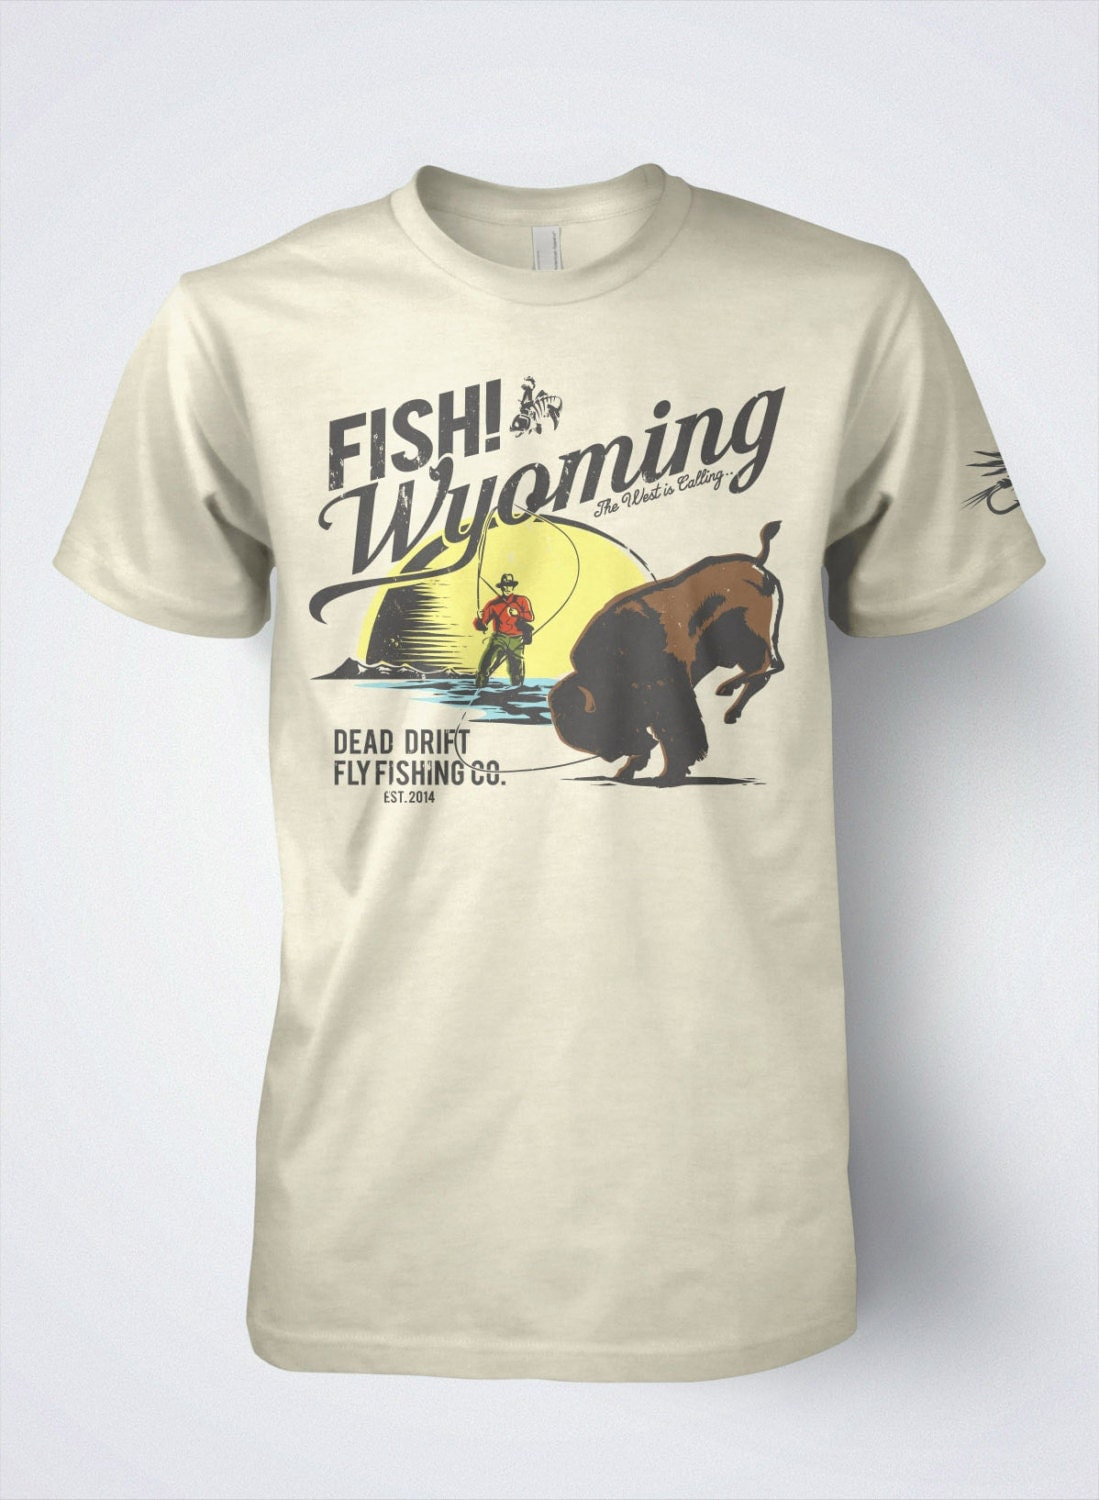 best selling fishing t shirts for men the retro by deaddrift